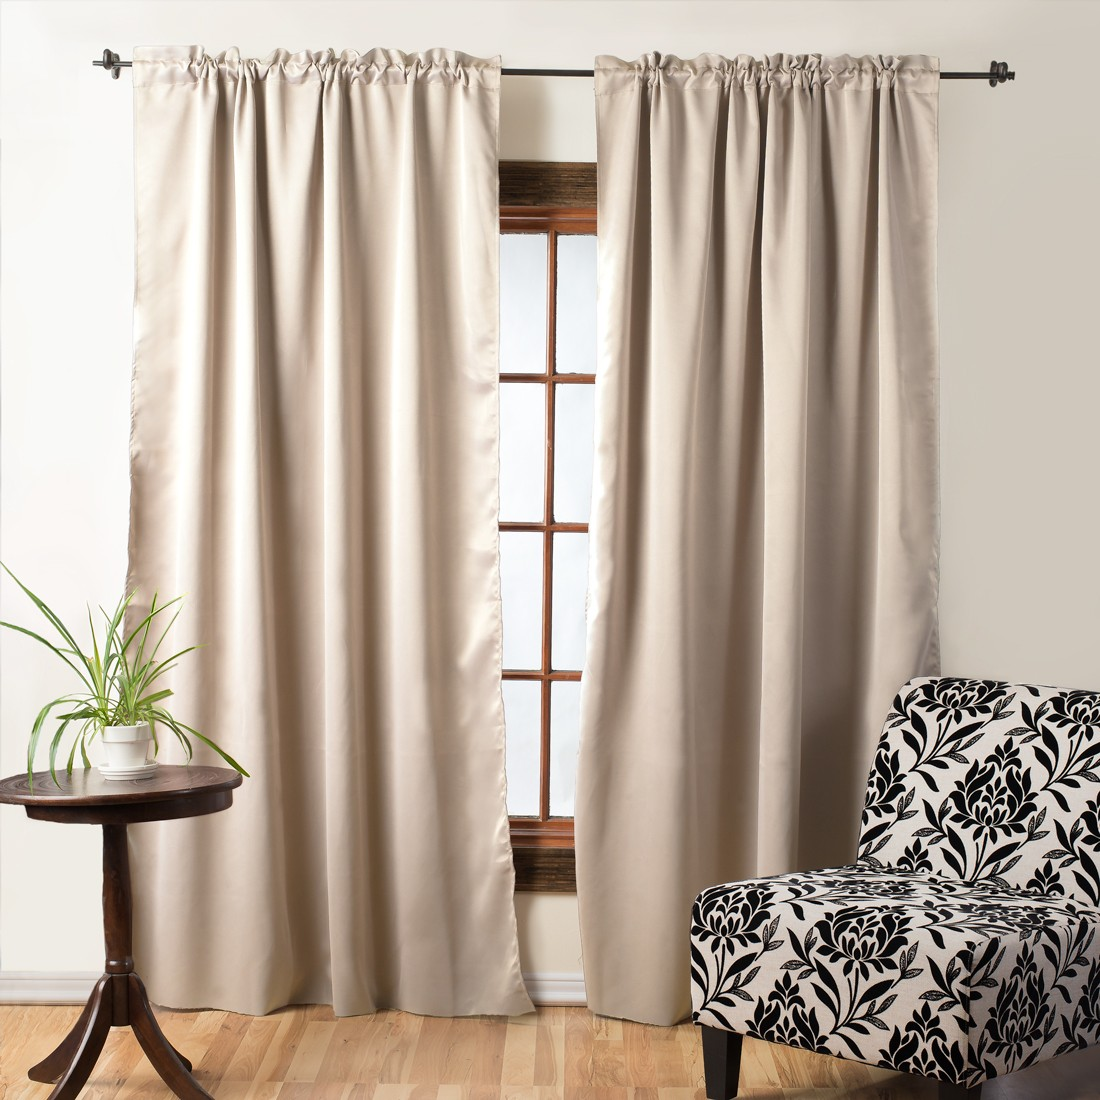 pres-new-curtains-pocket-beige